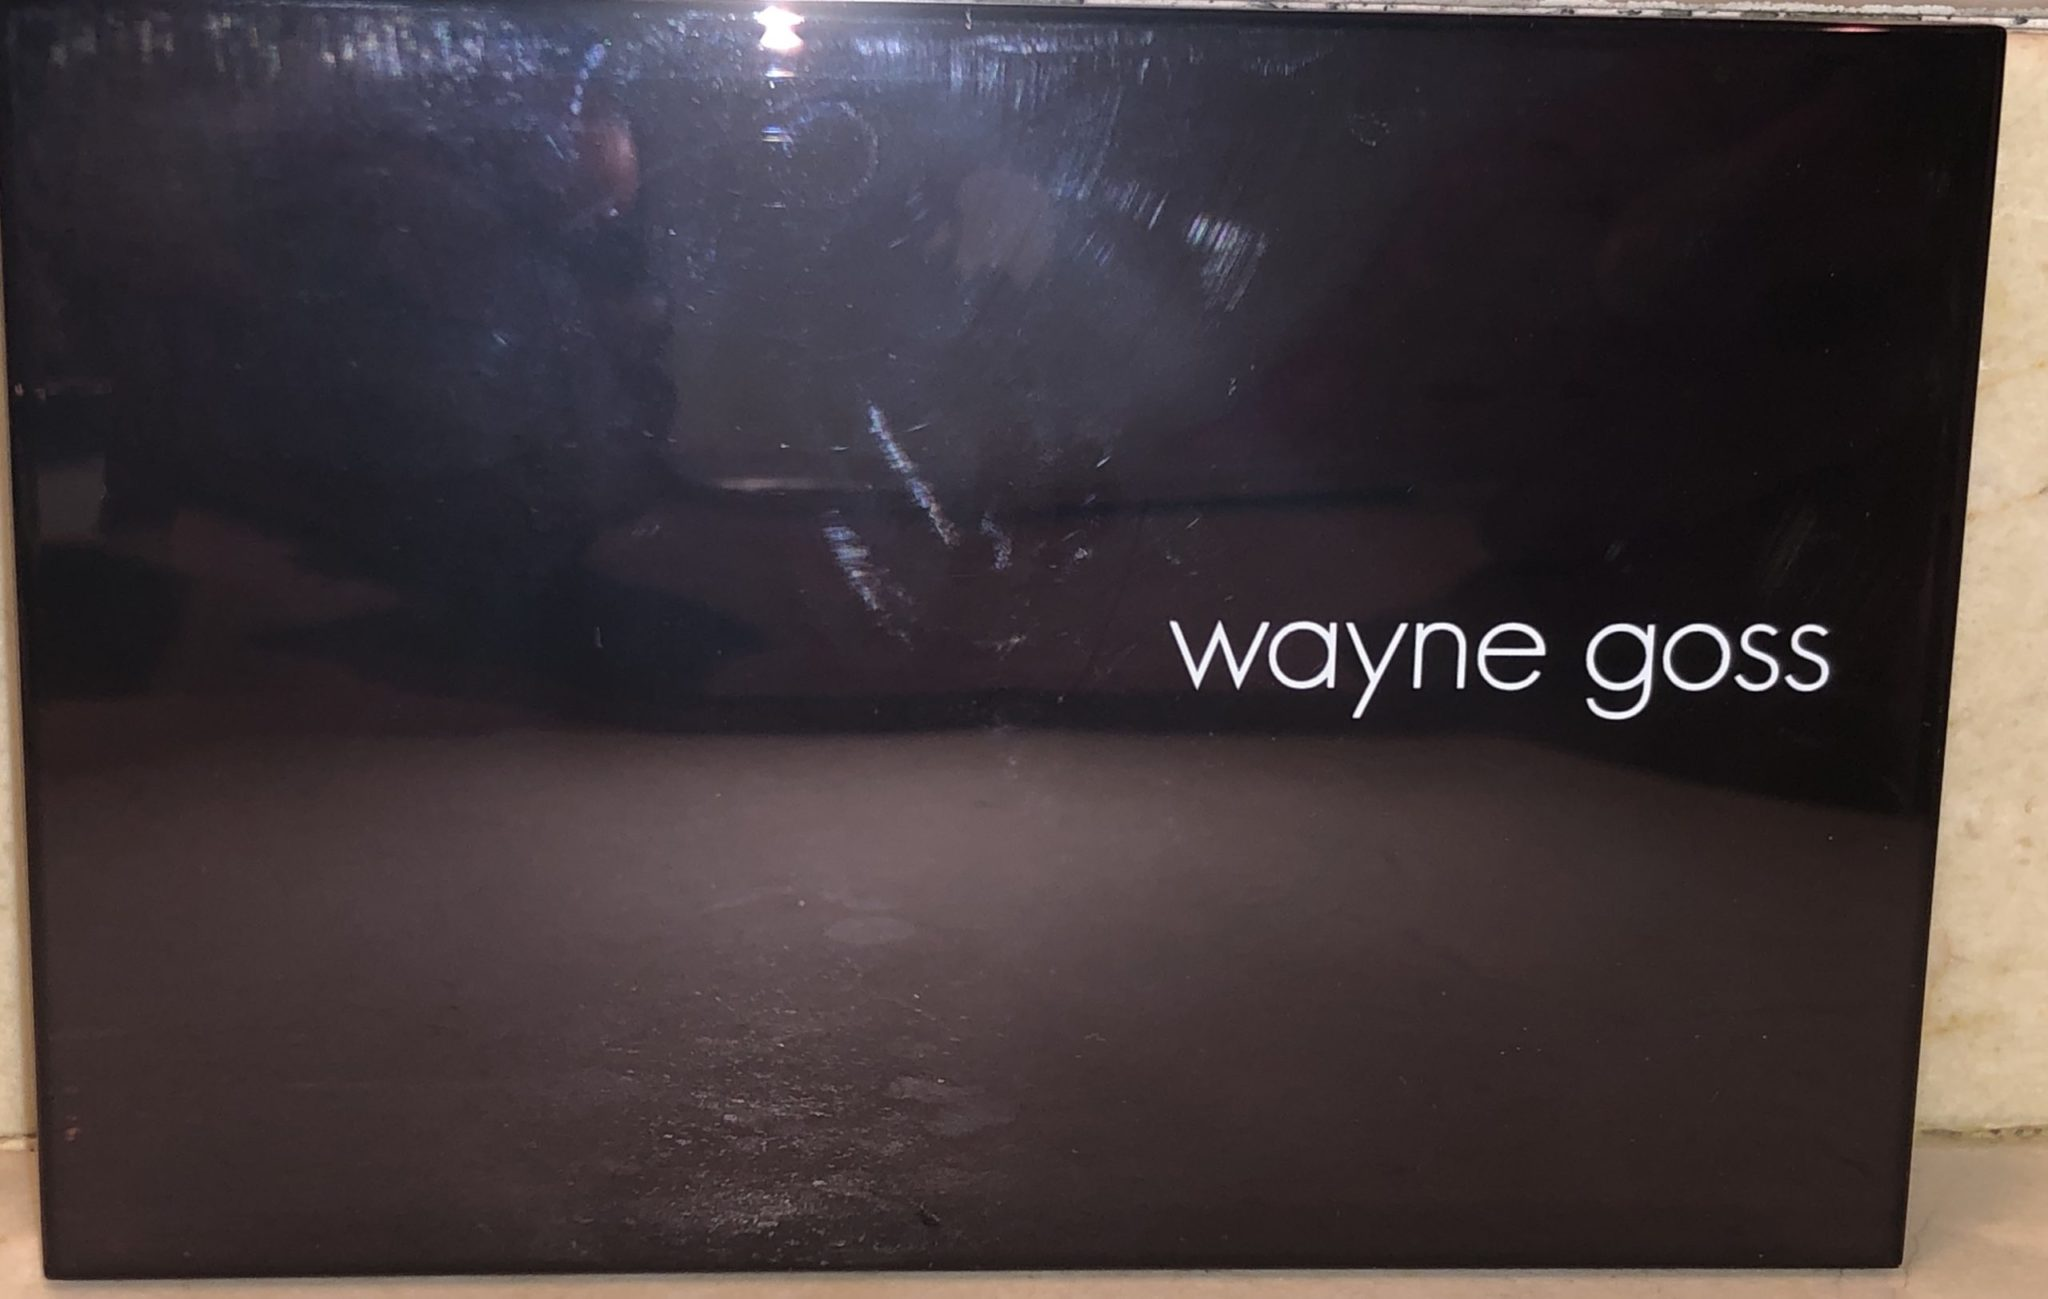 WAYNE GOSS IMPERIAL TOPAZ EYESHADOW PALETTE OUTER BOX